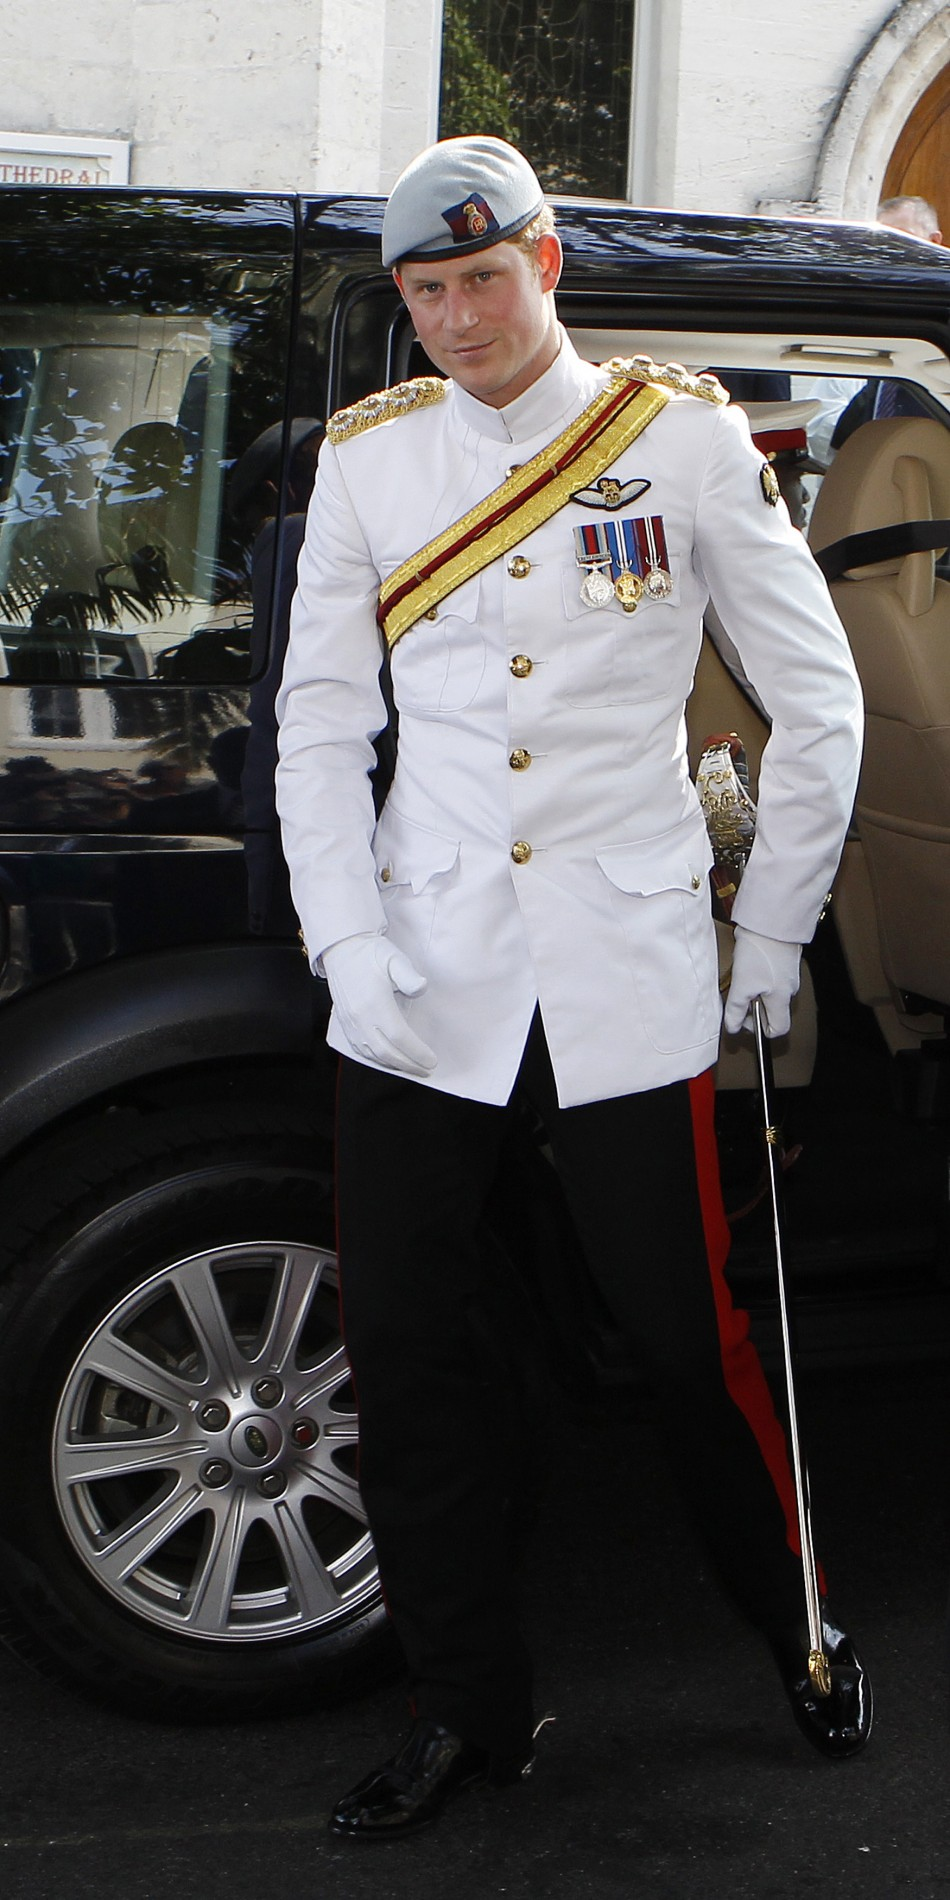 In Uniform